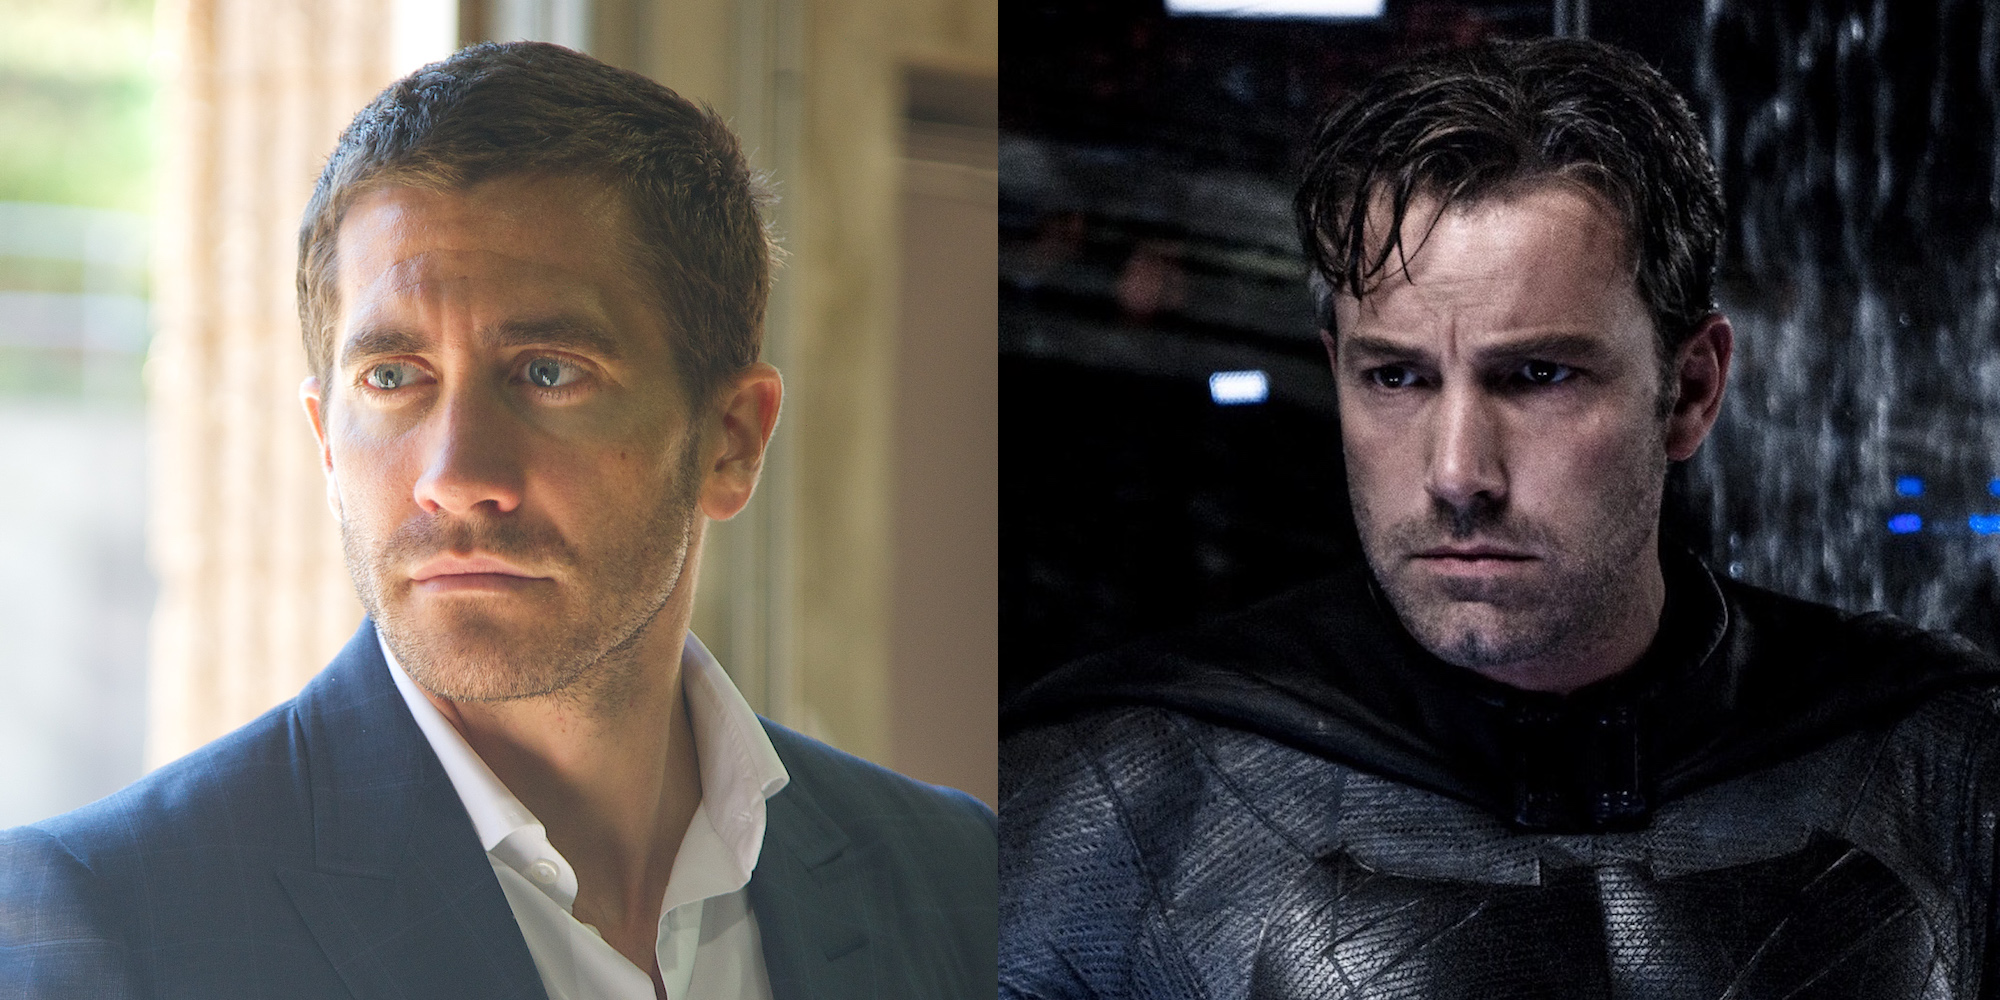 Jake Gyllenhaal and Ben Affleck